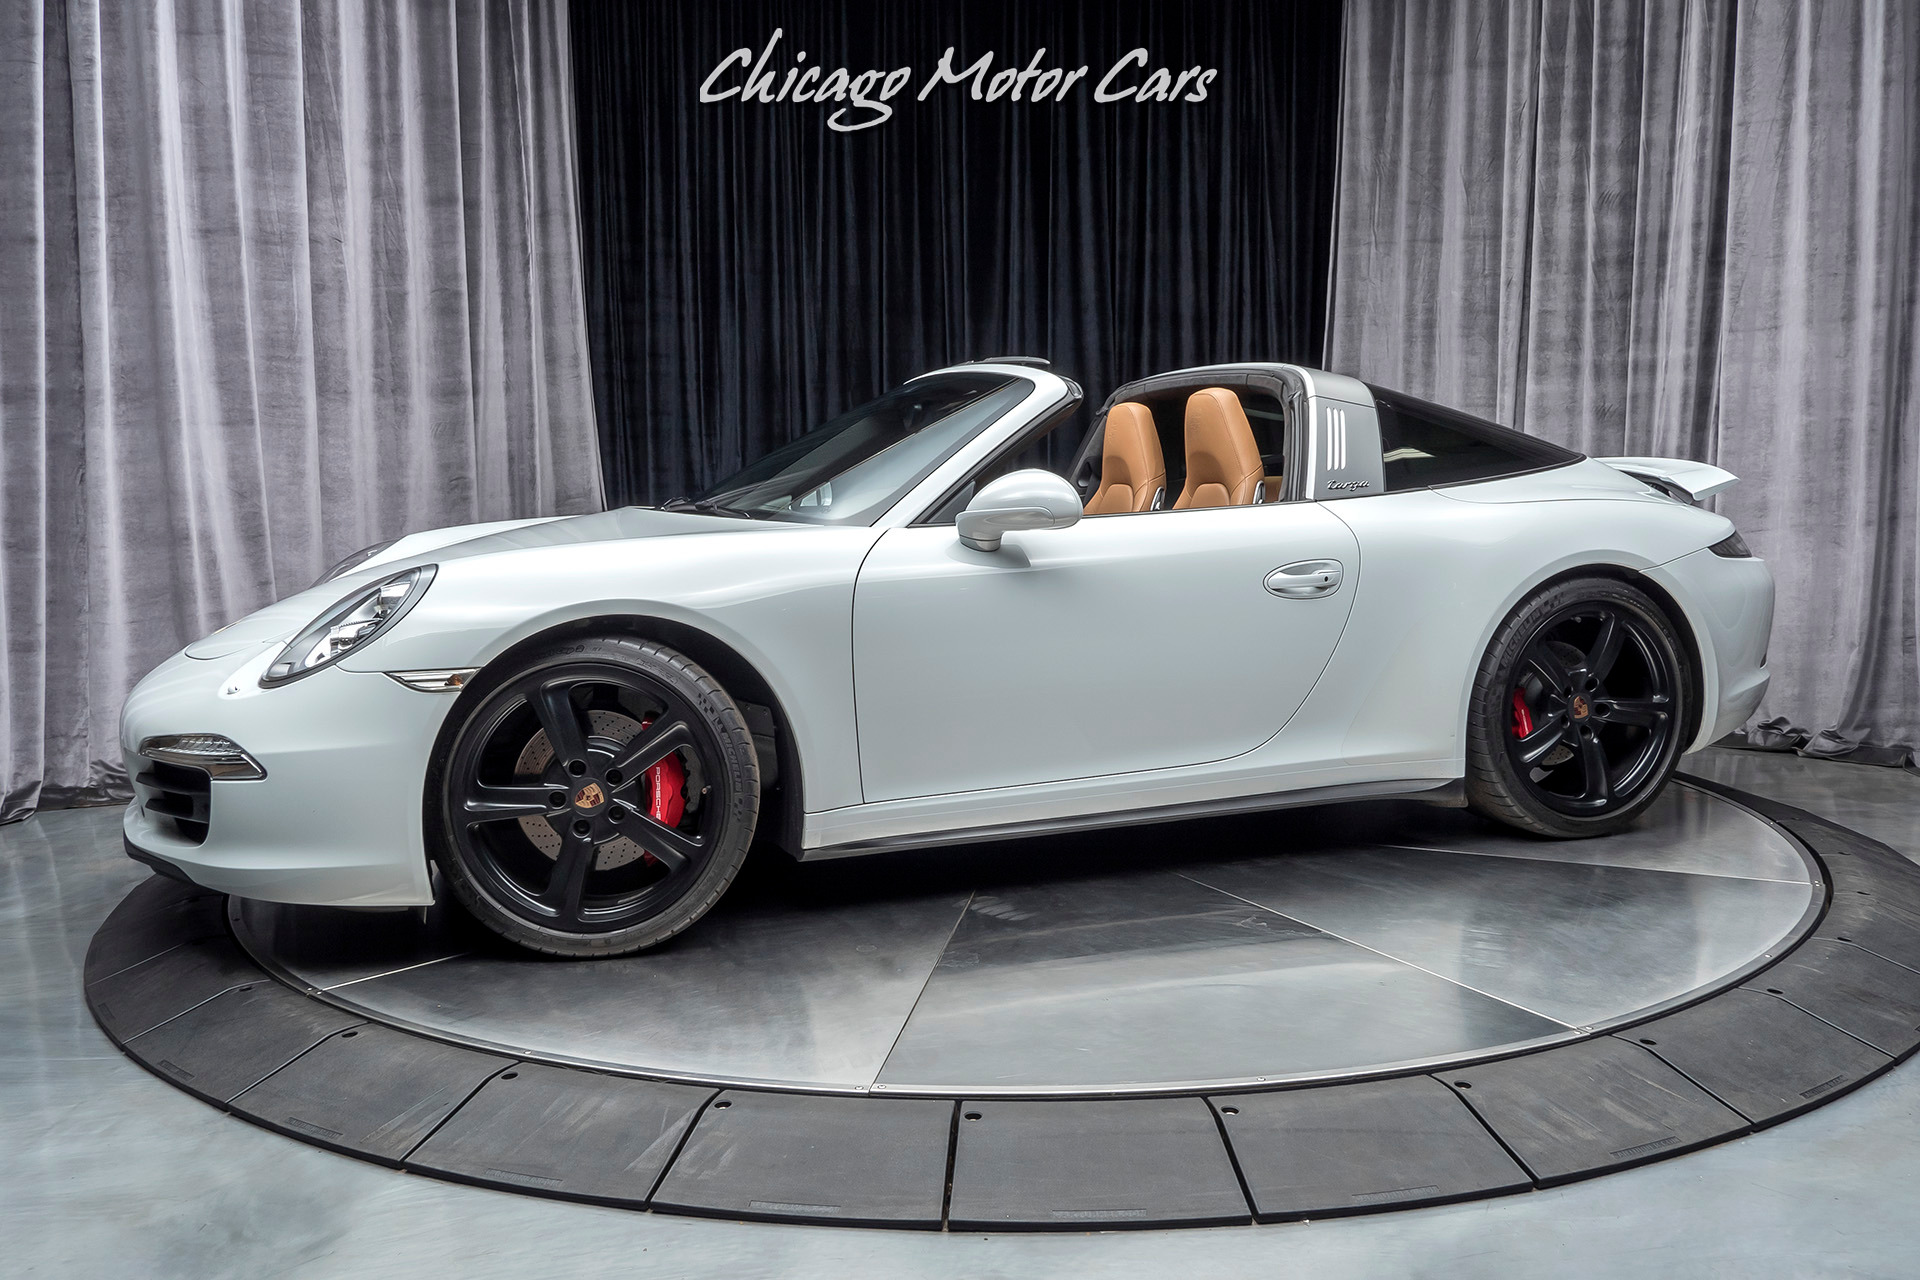 Used 2015 Porsche 911 Targa 4s Original Msrp 153k Loaded W Factory Options For Sale Special Pricing Chicago Motor Cars Stock 16450d